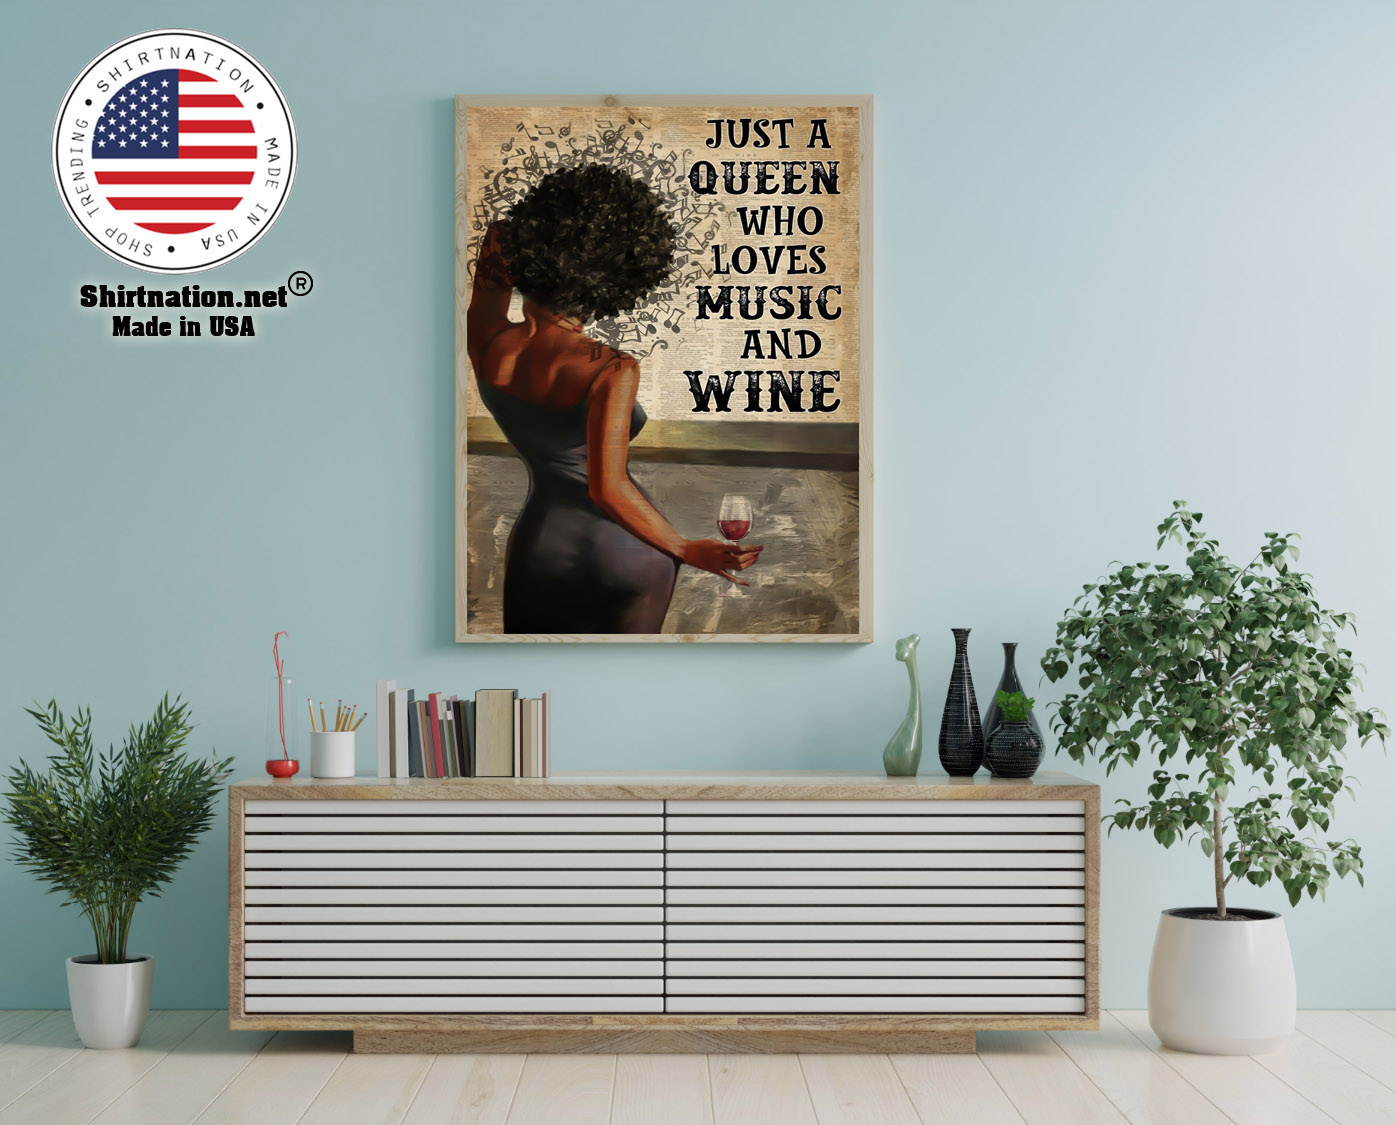 Just a queen who loves music and wine poster 12